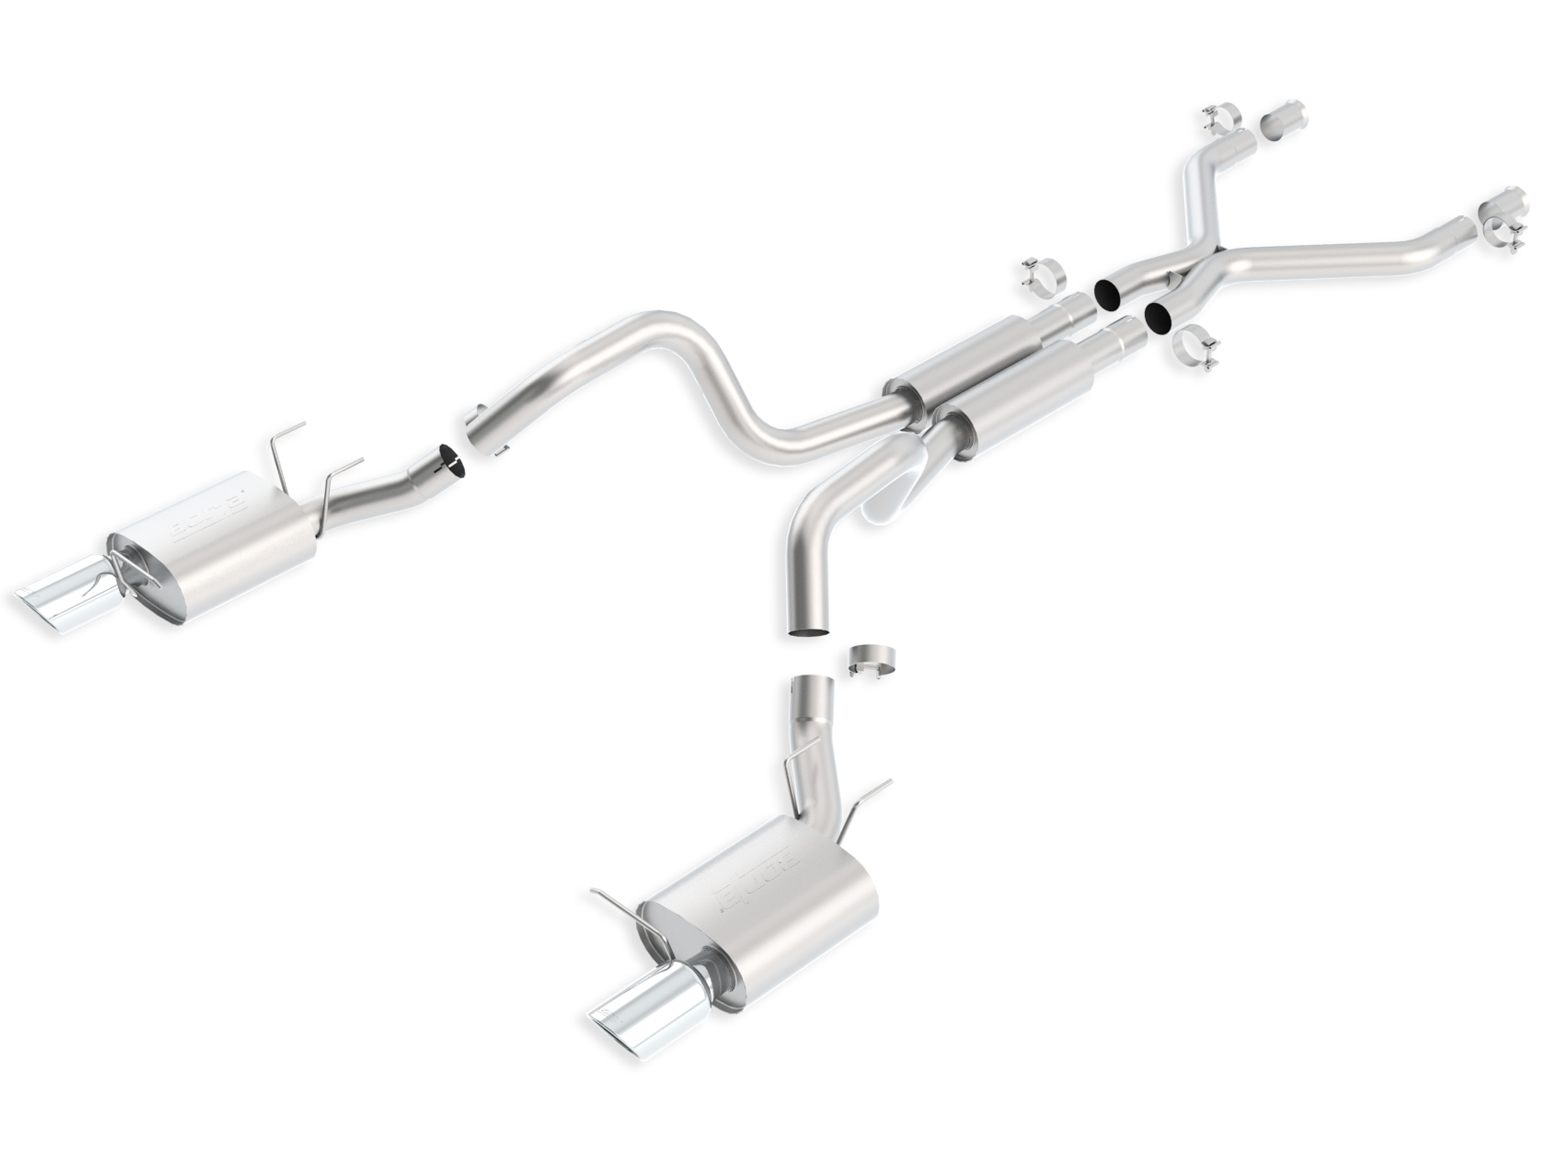 Ford Mustang Shelby Gt 500 2011-2012 Borla 3&#34; Cat-Back Exhaust System - Single Round Rolled Angle-Cut  Long X Single Round Rolled Angle-Cut Intercooled&quot; Dia